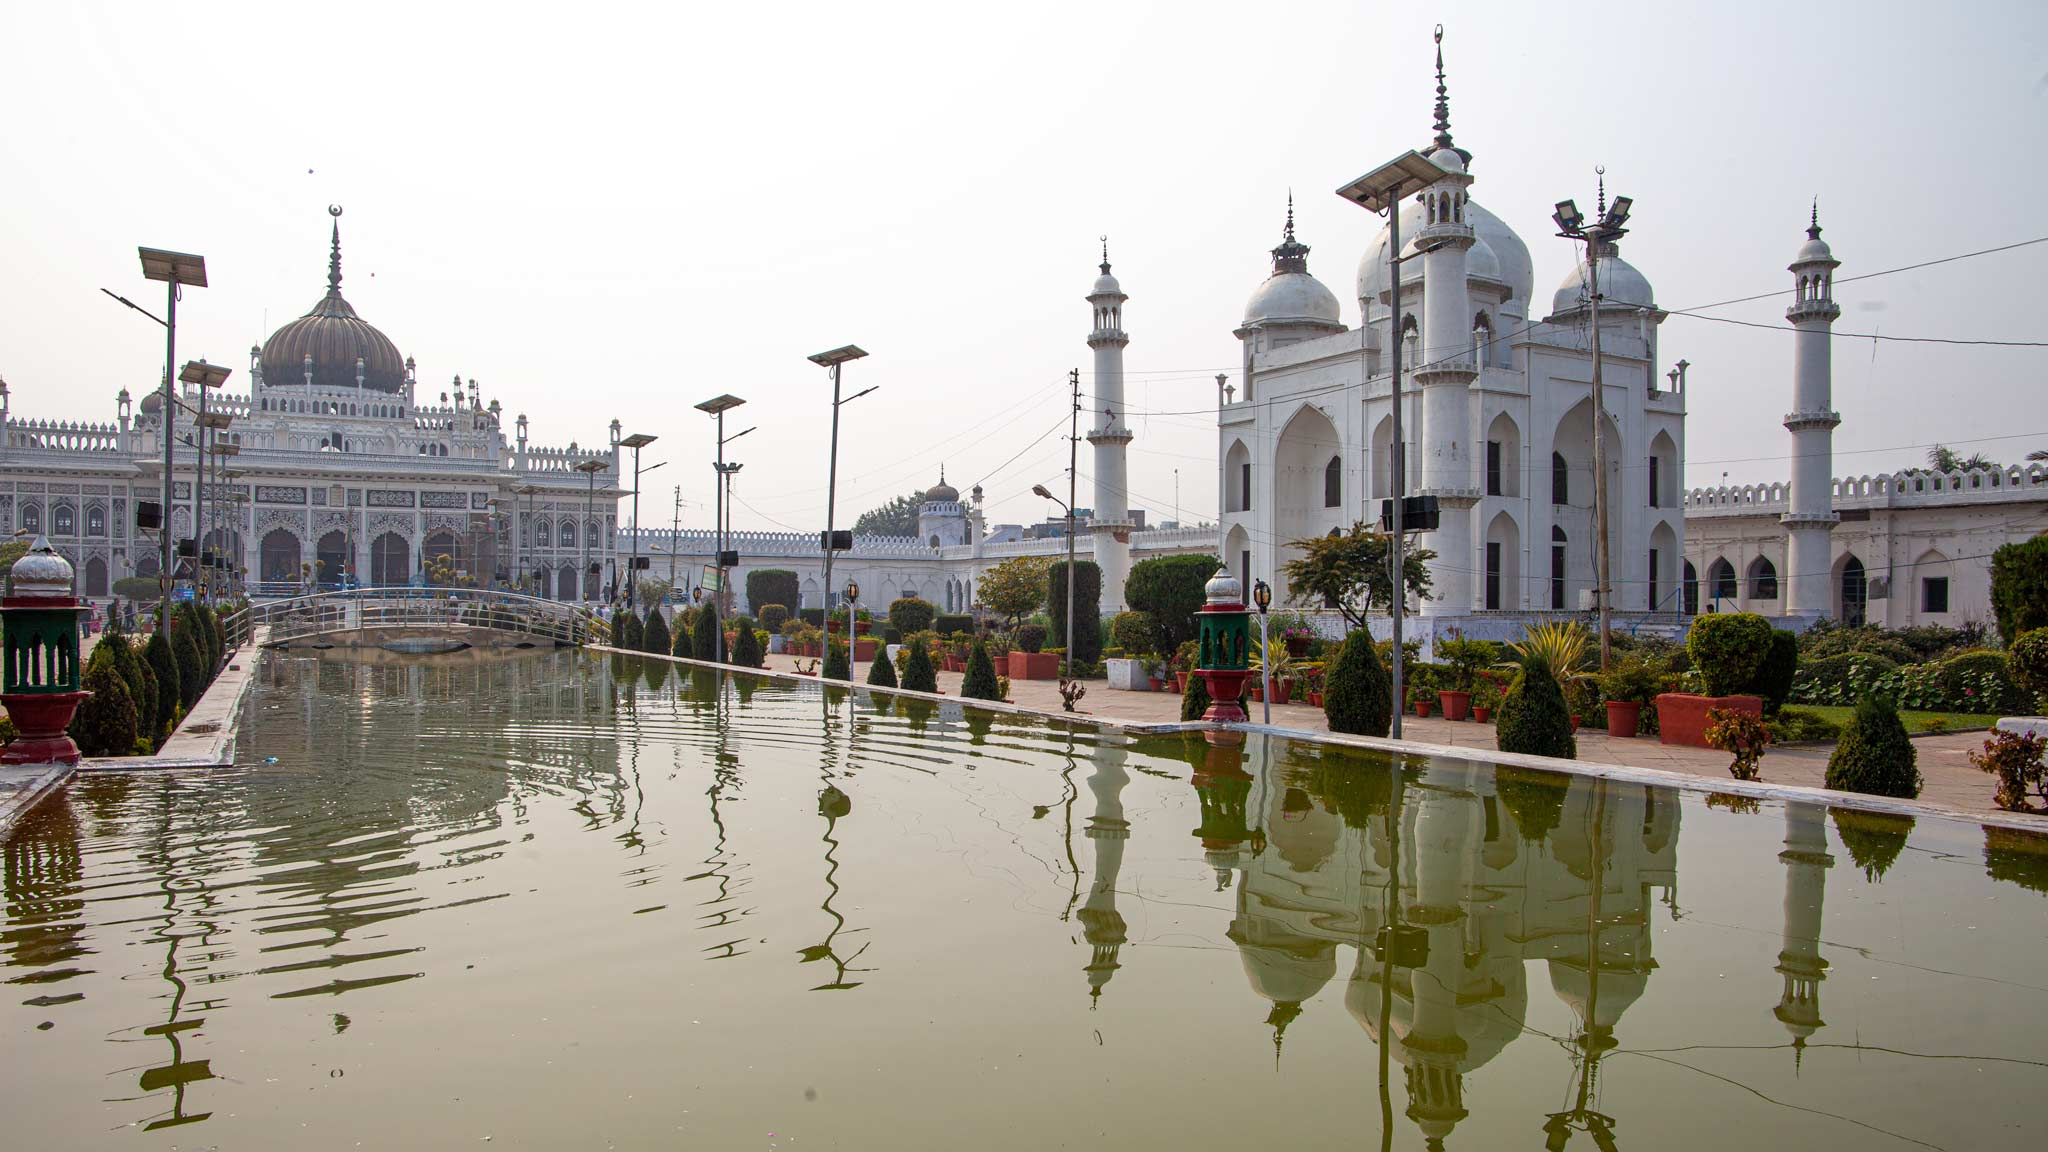 Reflections of the white mosque on a smoggy day